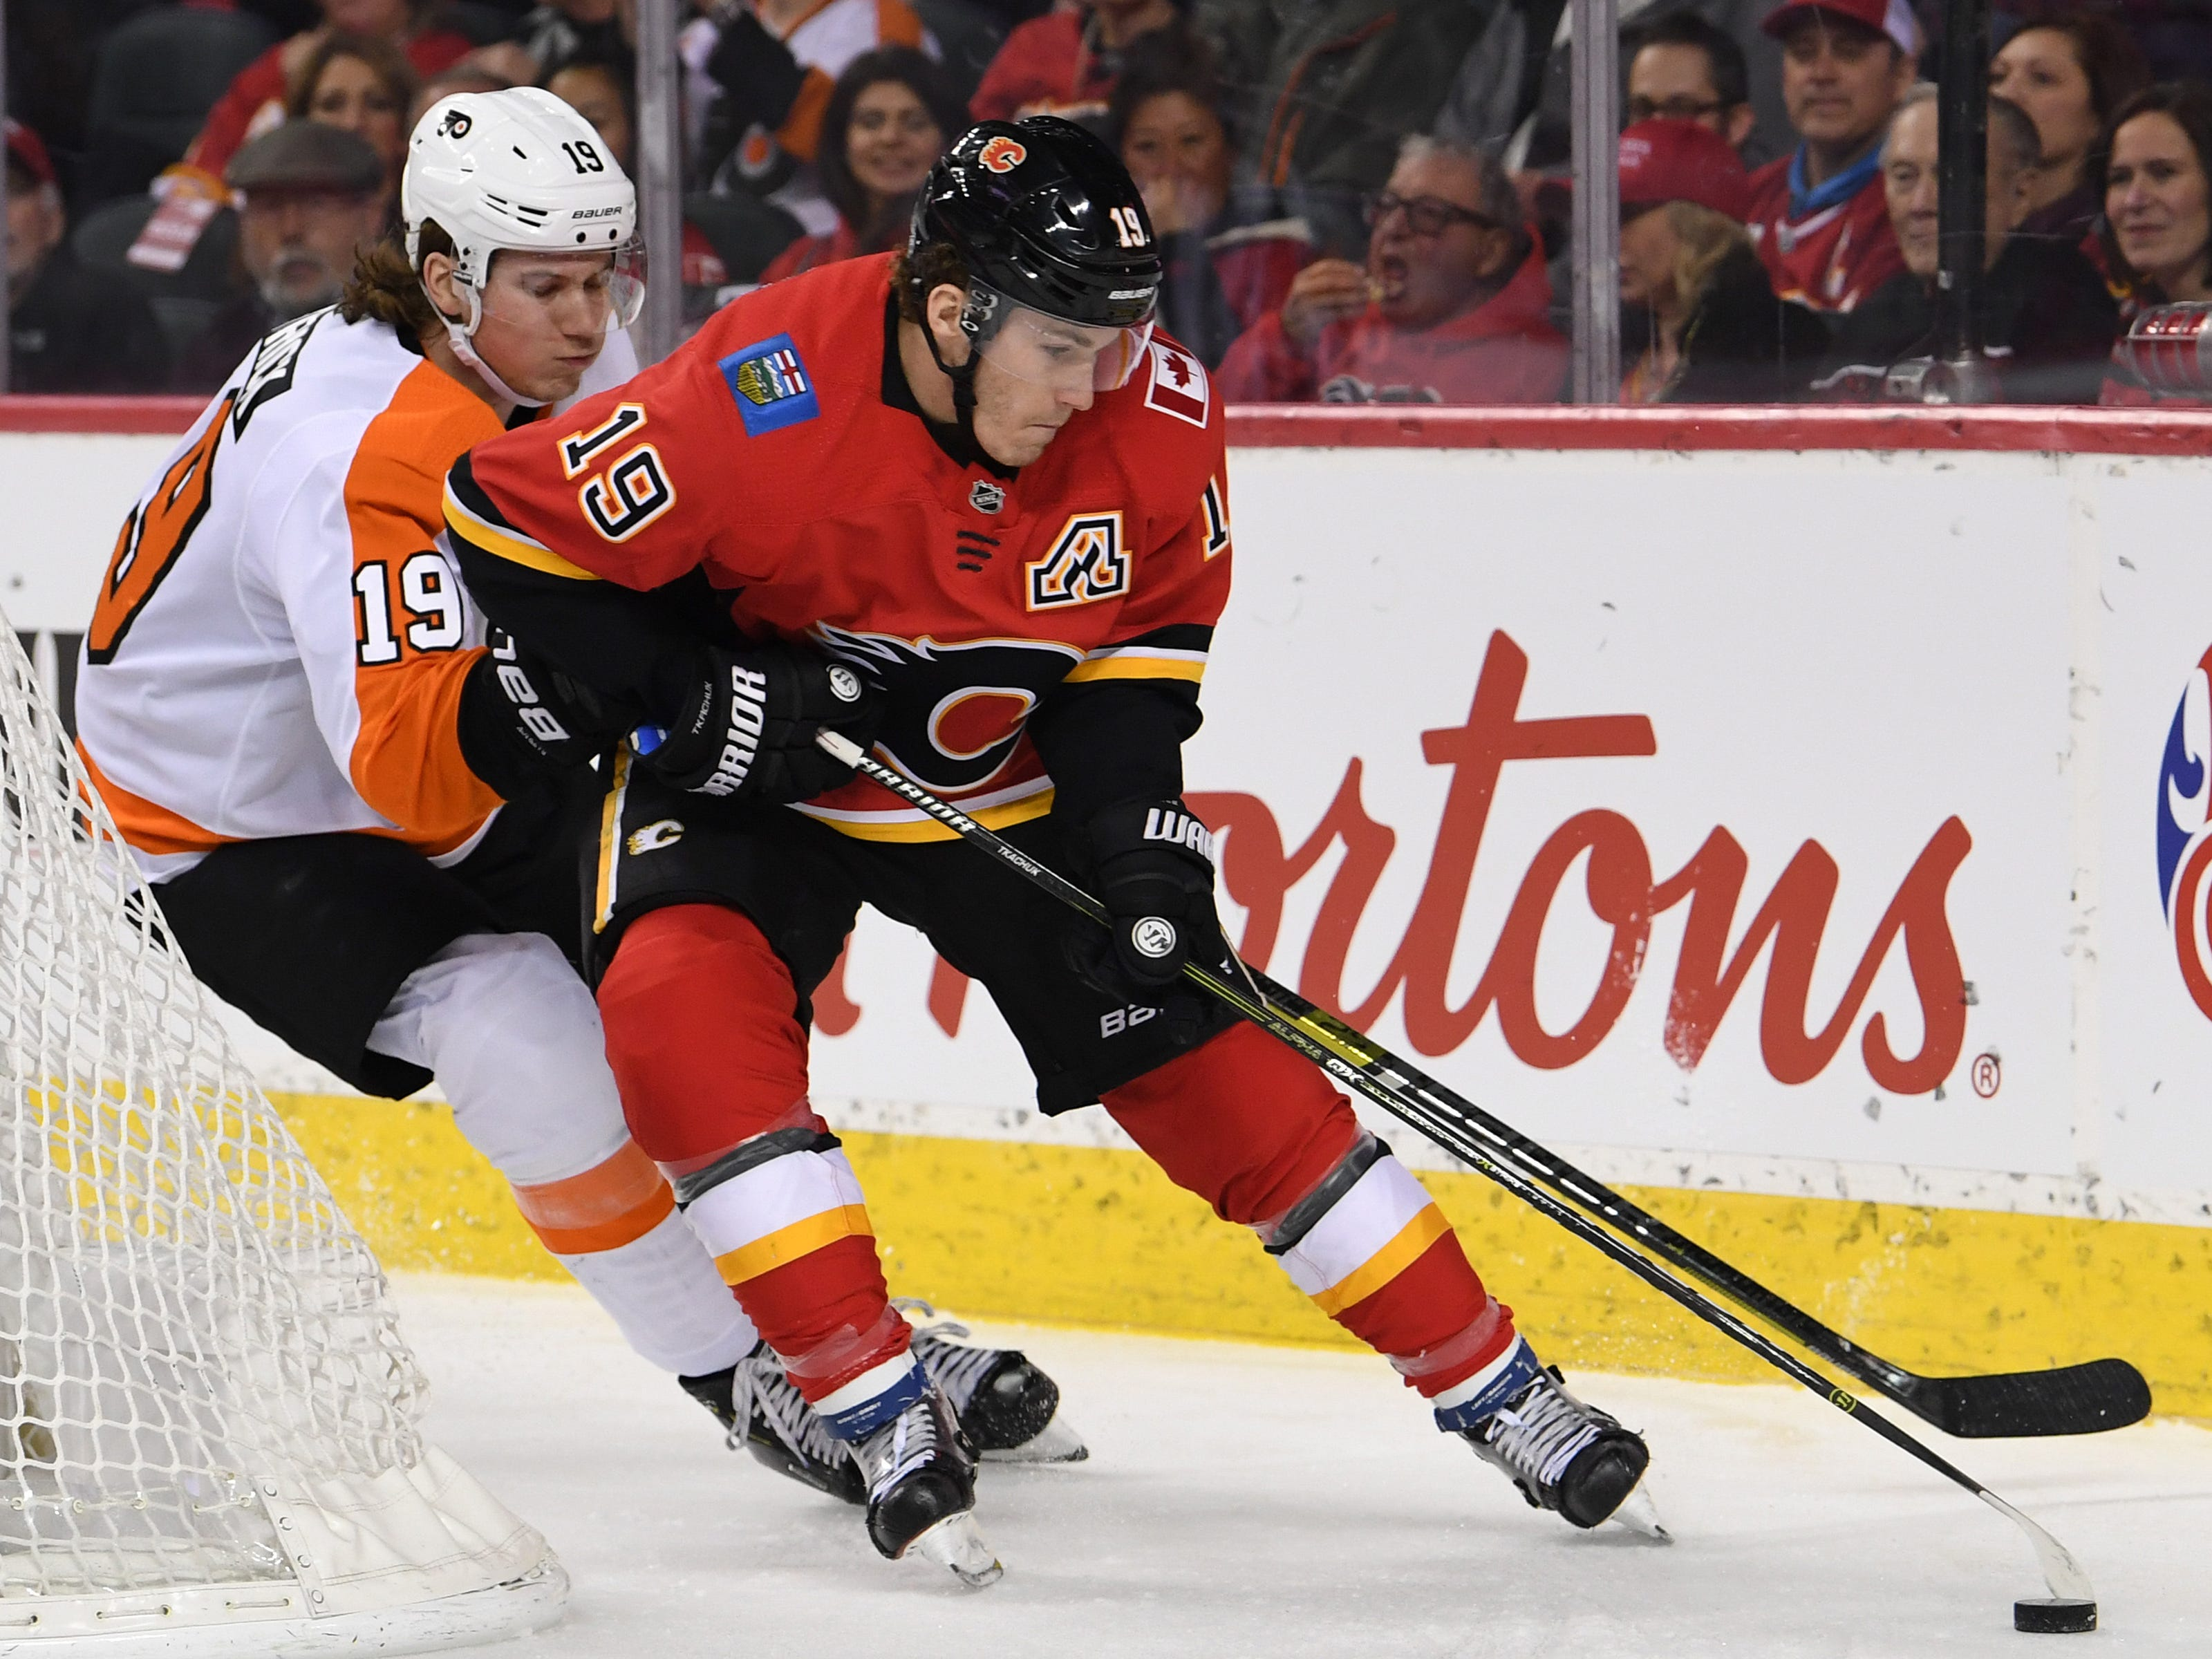 Dec. 12: Calgary Flames left wing Matthew Tkachuk battles for the puck with Philadelphia Flyers center Nolan Patrick during the first period at Scotiabank Saddledome. The Flames won the game in overtime, 6-5.